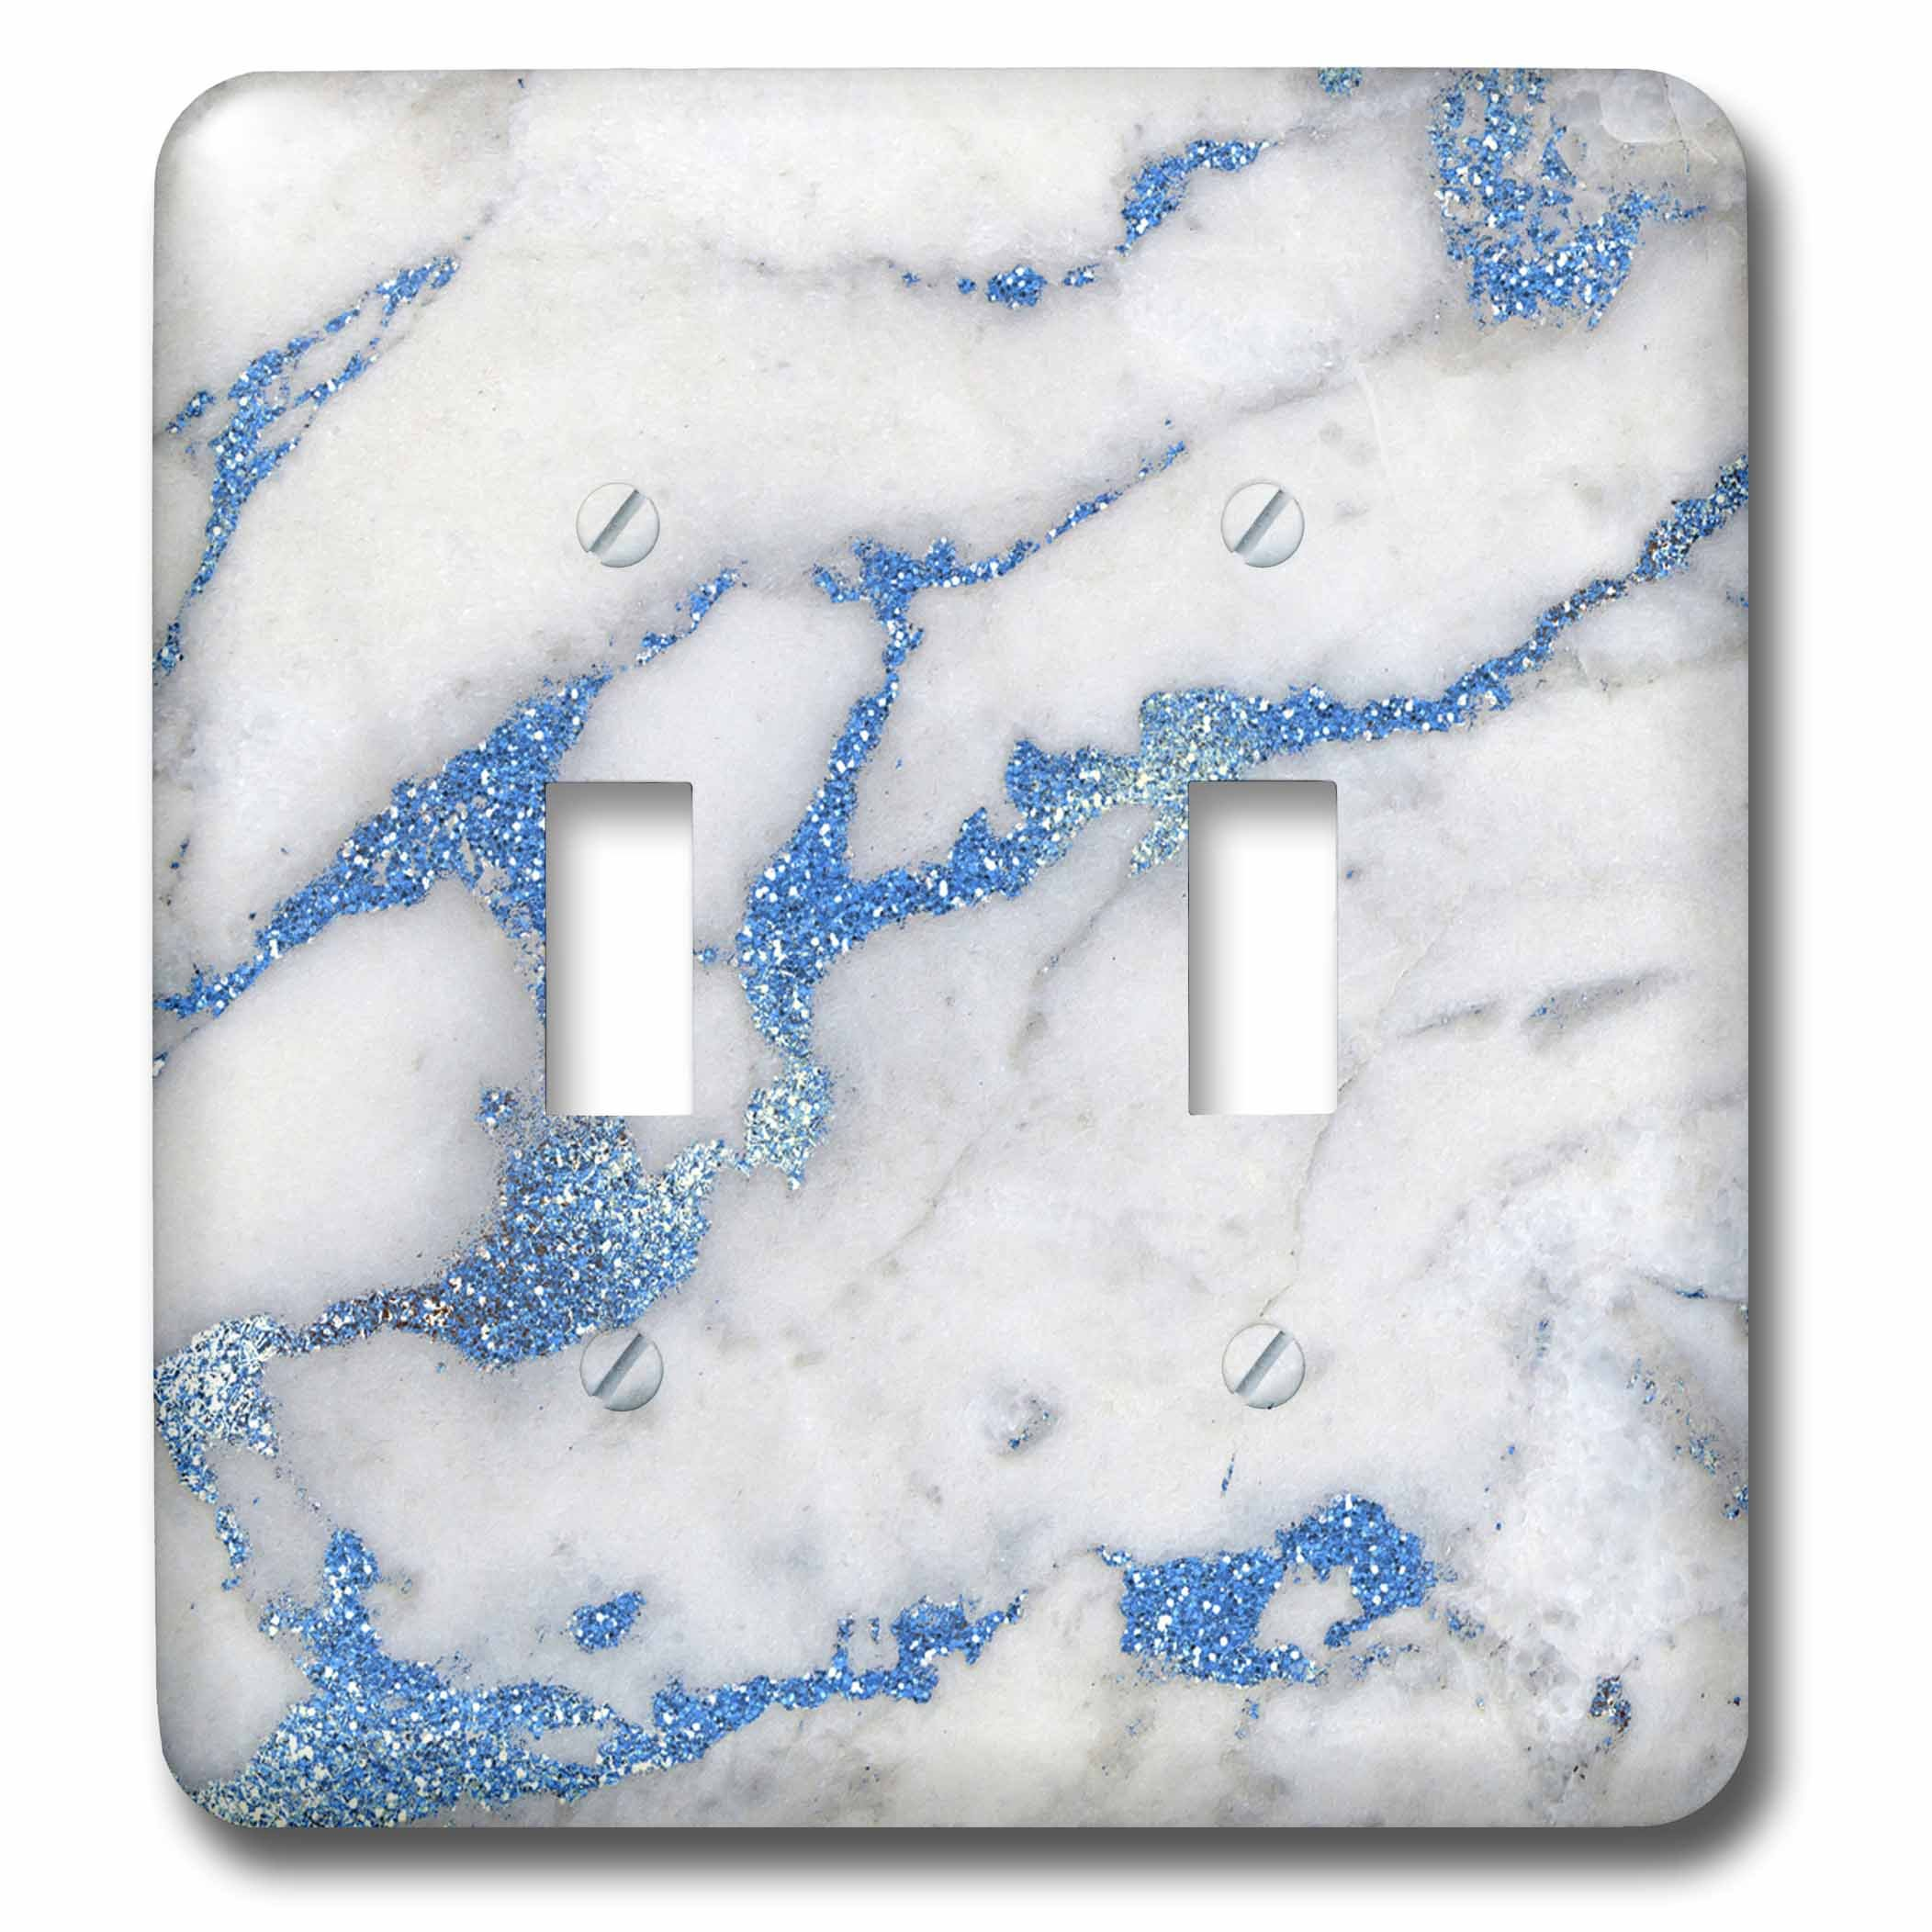 3dRose Uta Naumann Faux Glitter Pattern - Image of Luxury and Trendy Blue Metal Glitter Veins Gray Marble - Light Switch Covers - double toggle switch (lsp_275088_2) by 3dRose (Image #1)